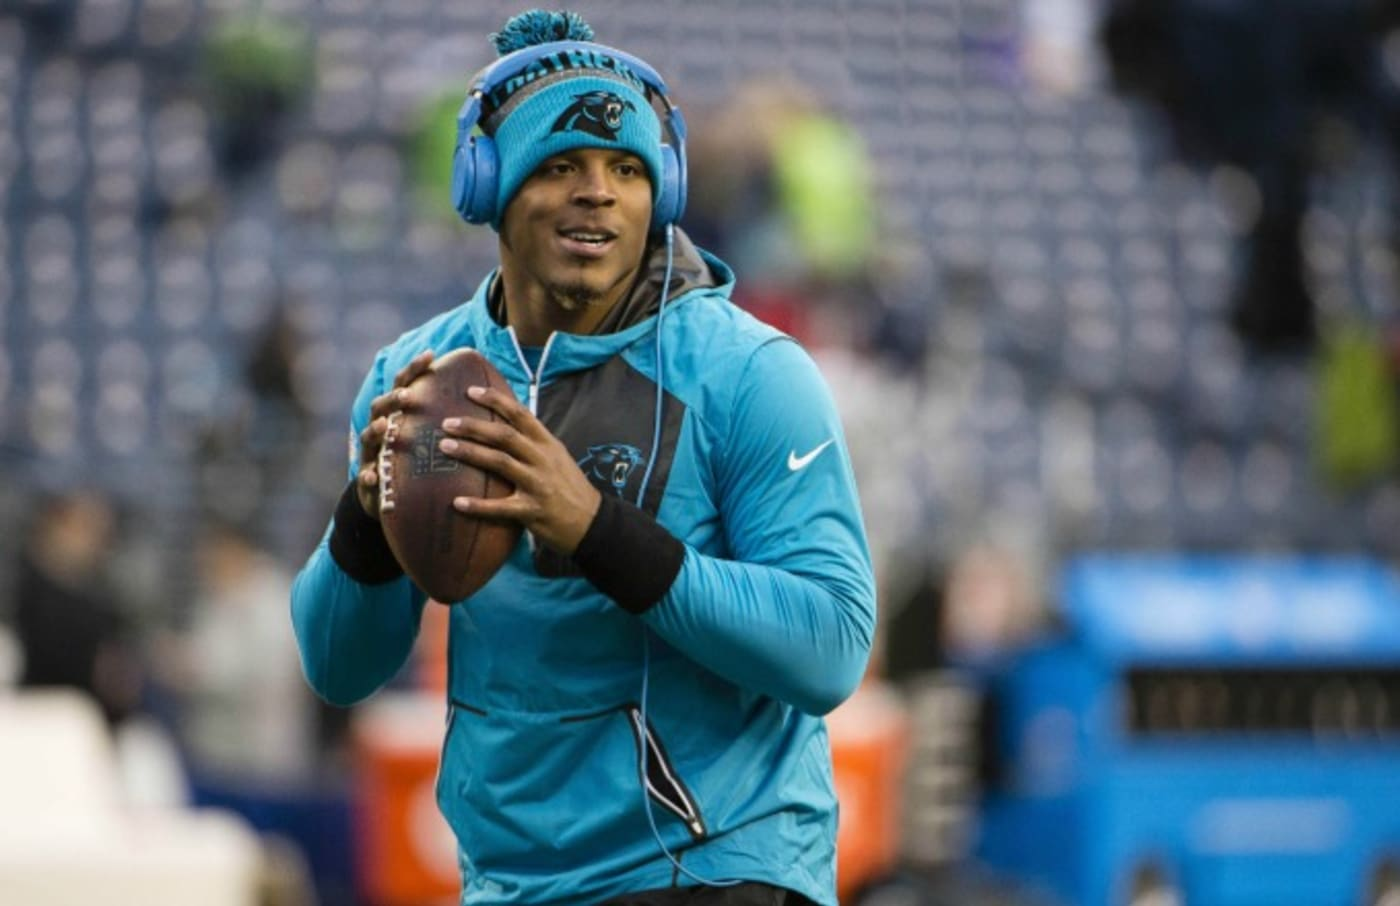 Cam Newton warms up before a game against the Seahawks.